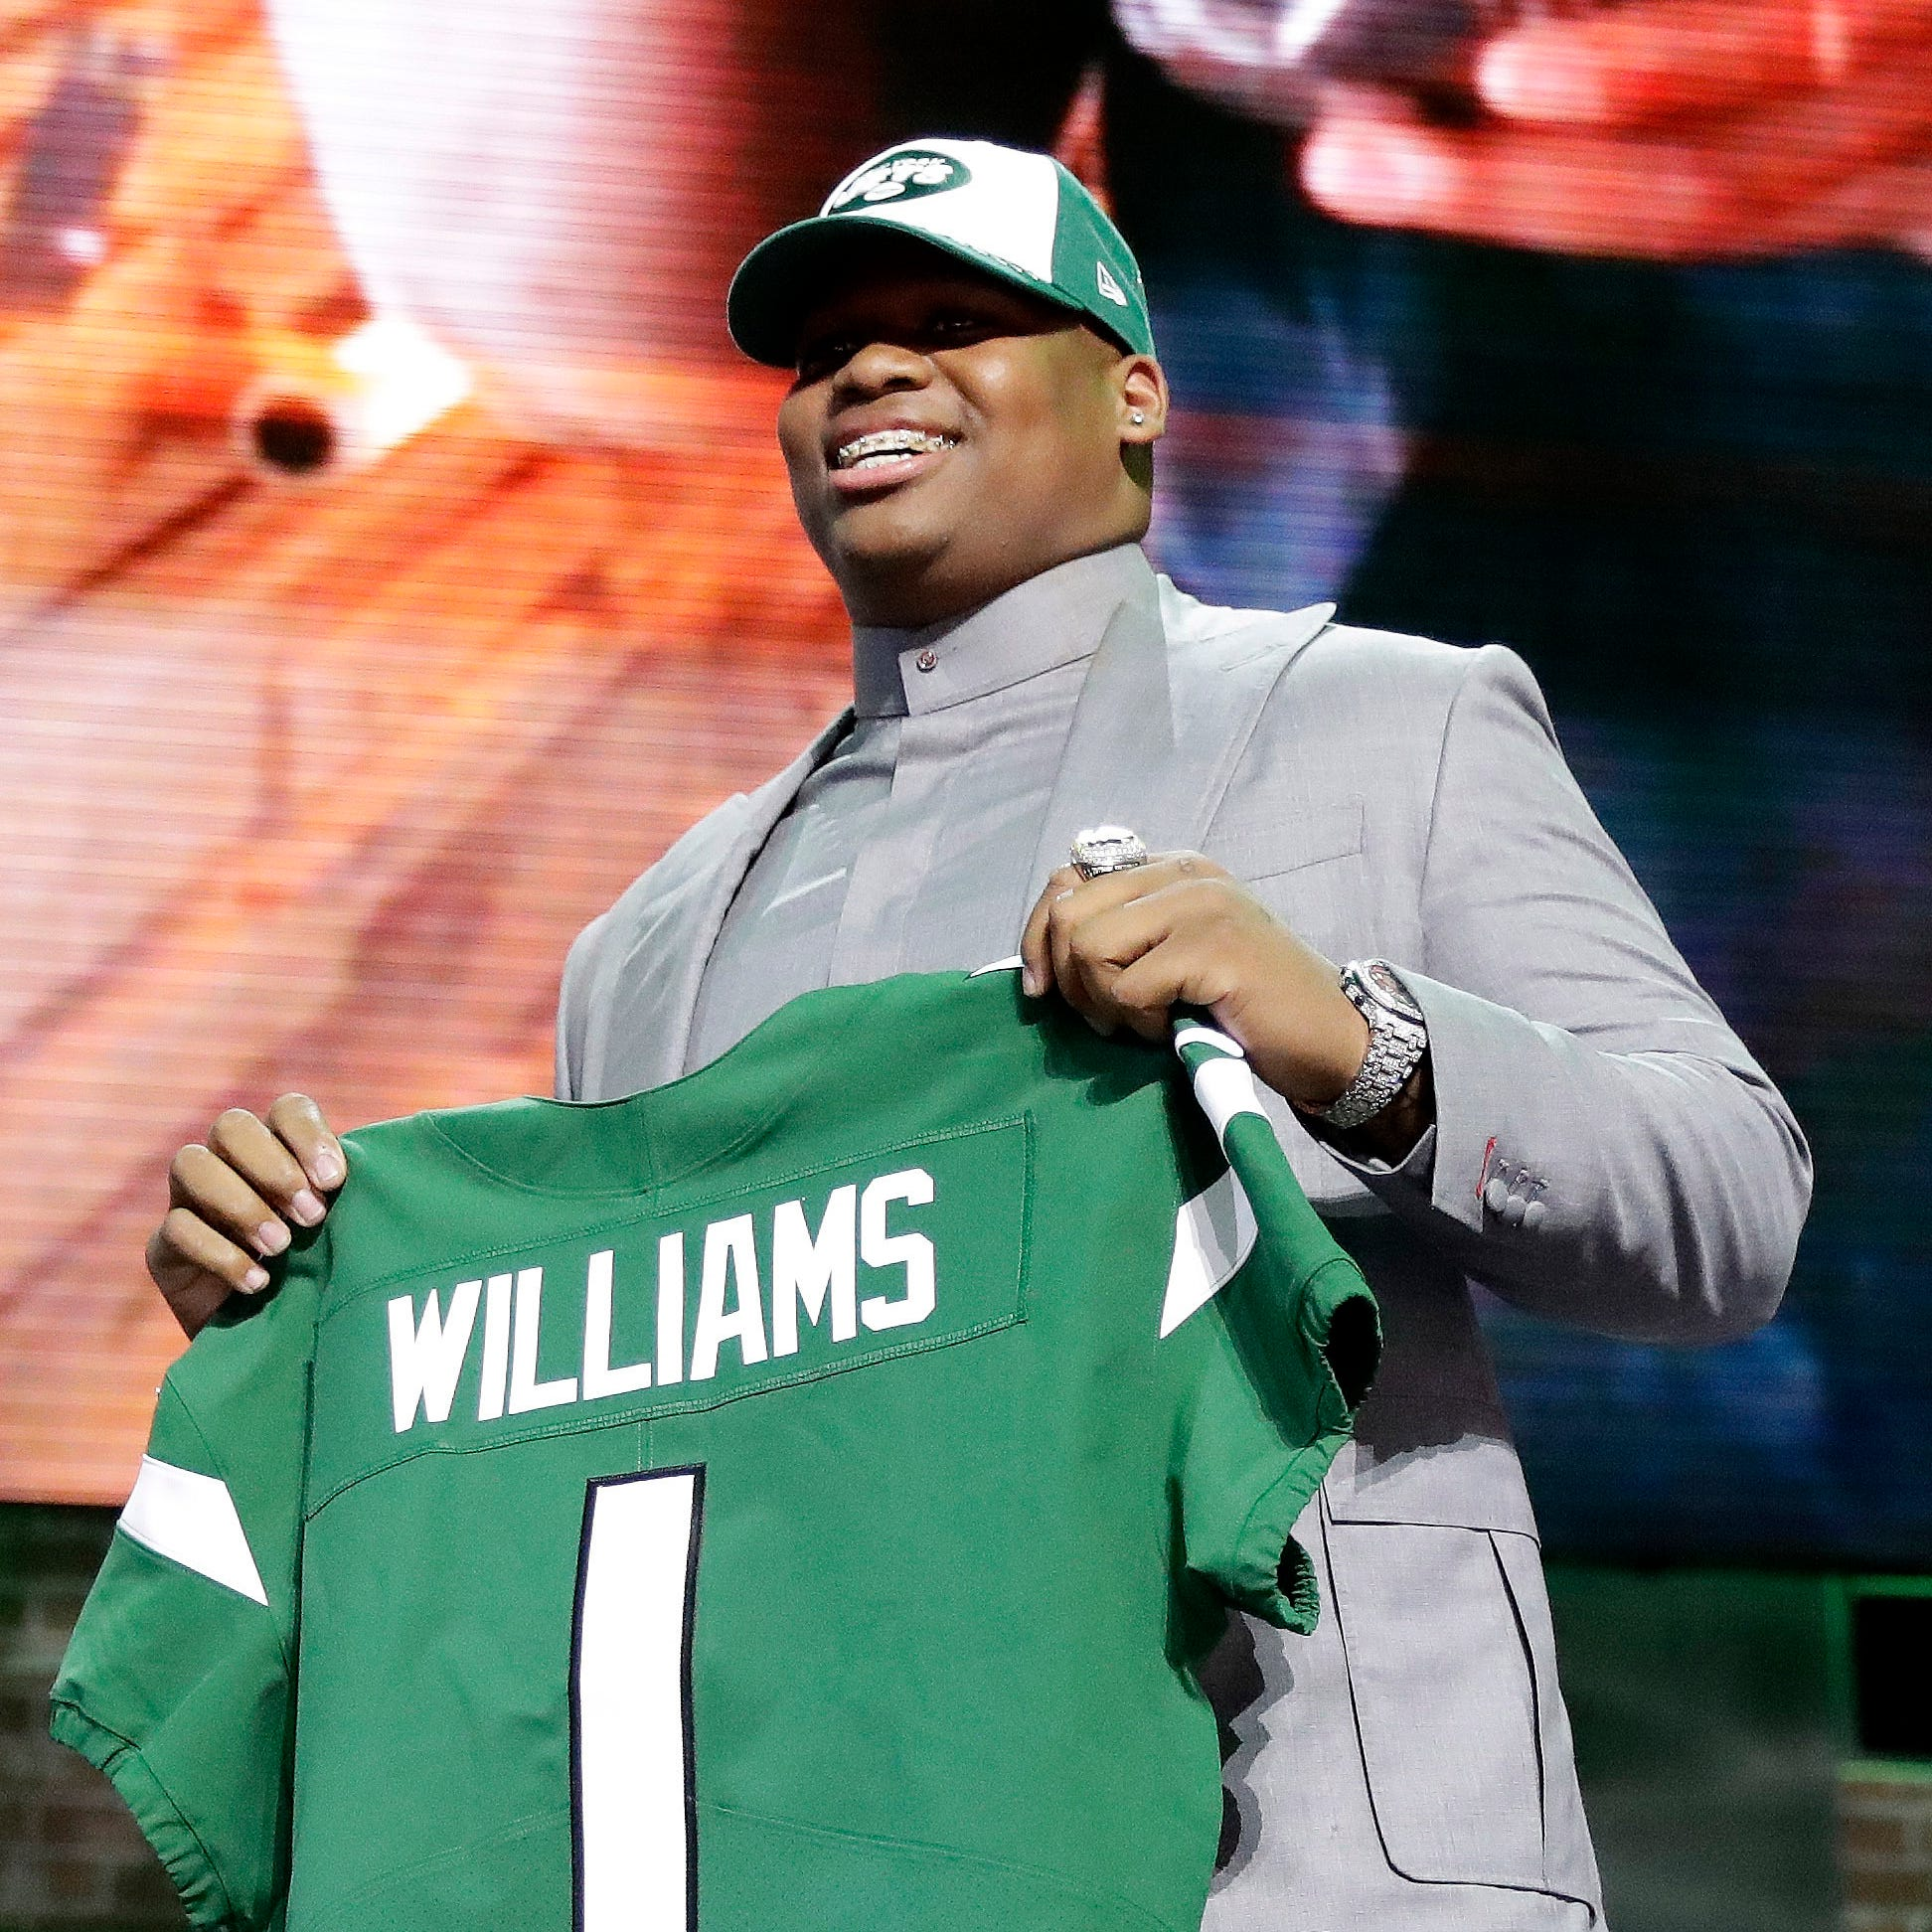 Analyzing the Jets' draft: Quinnen Williams was a home run, but too many risky picks after that